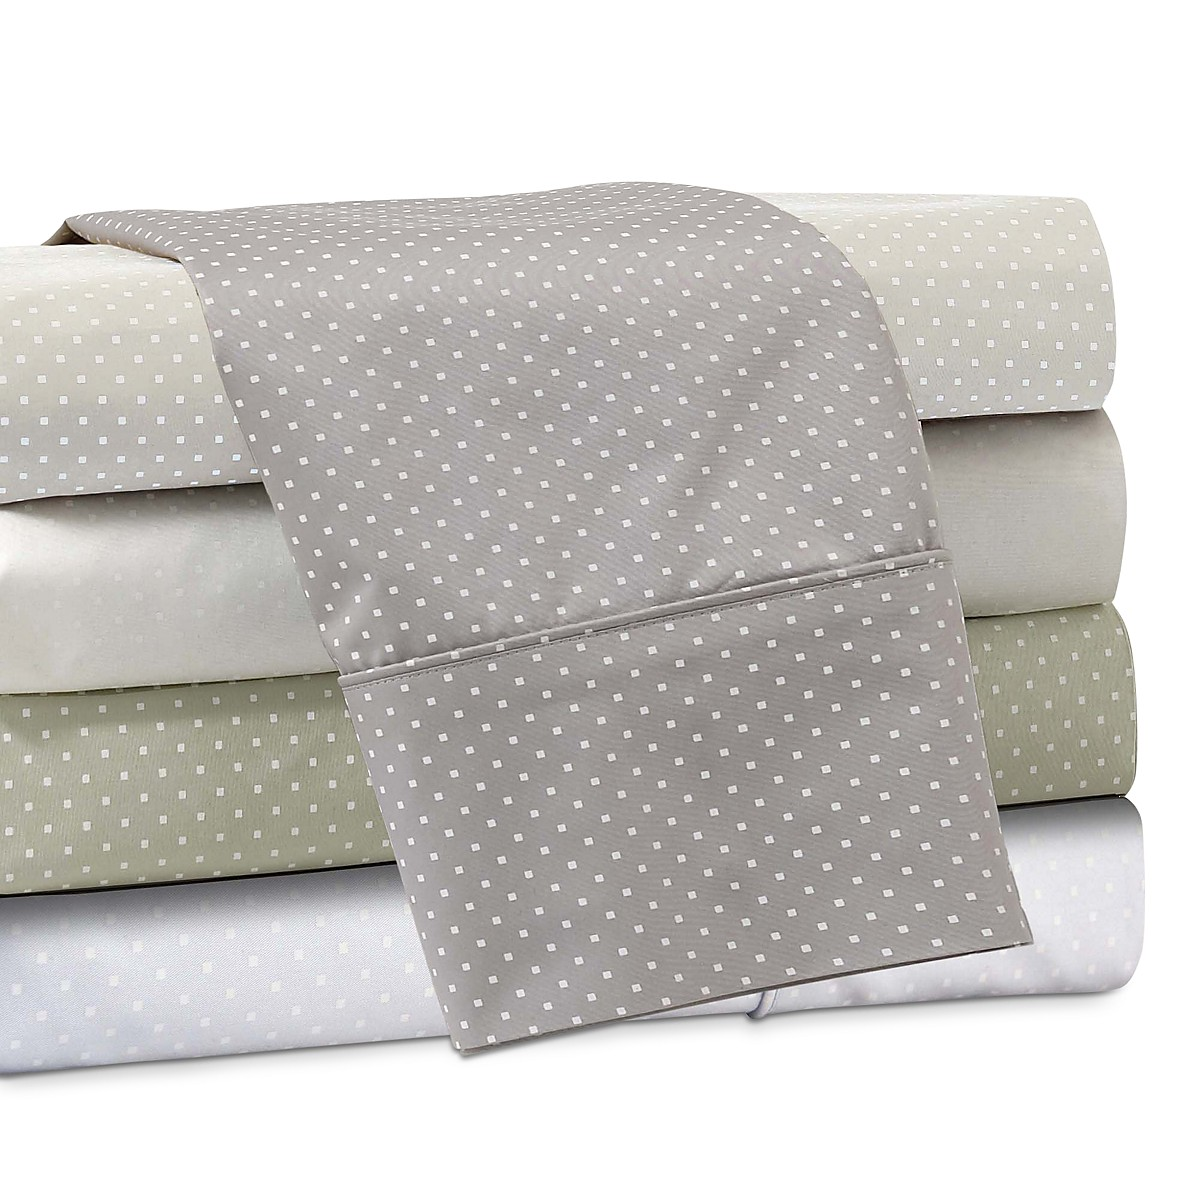 Beautiful charisma sheets with assorted colors and softy sheets with Cheap Price